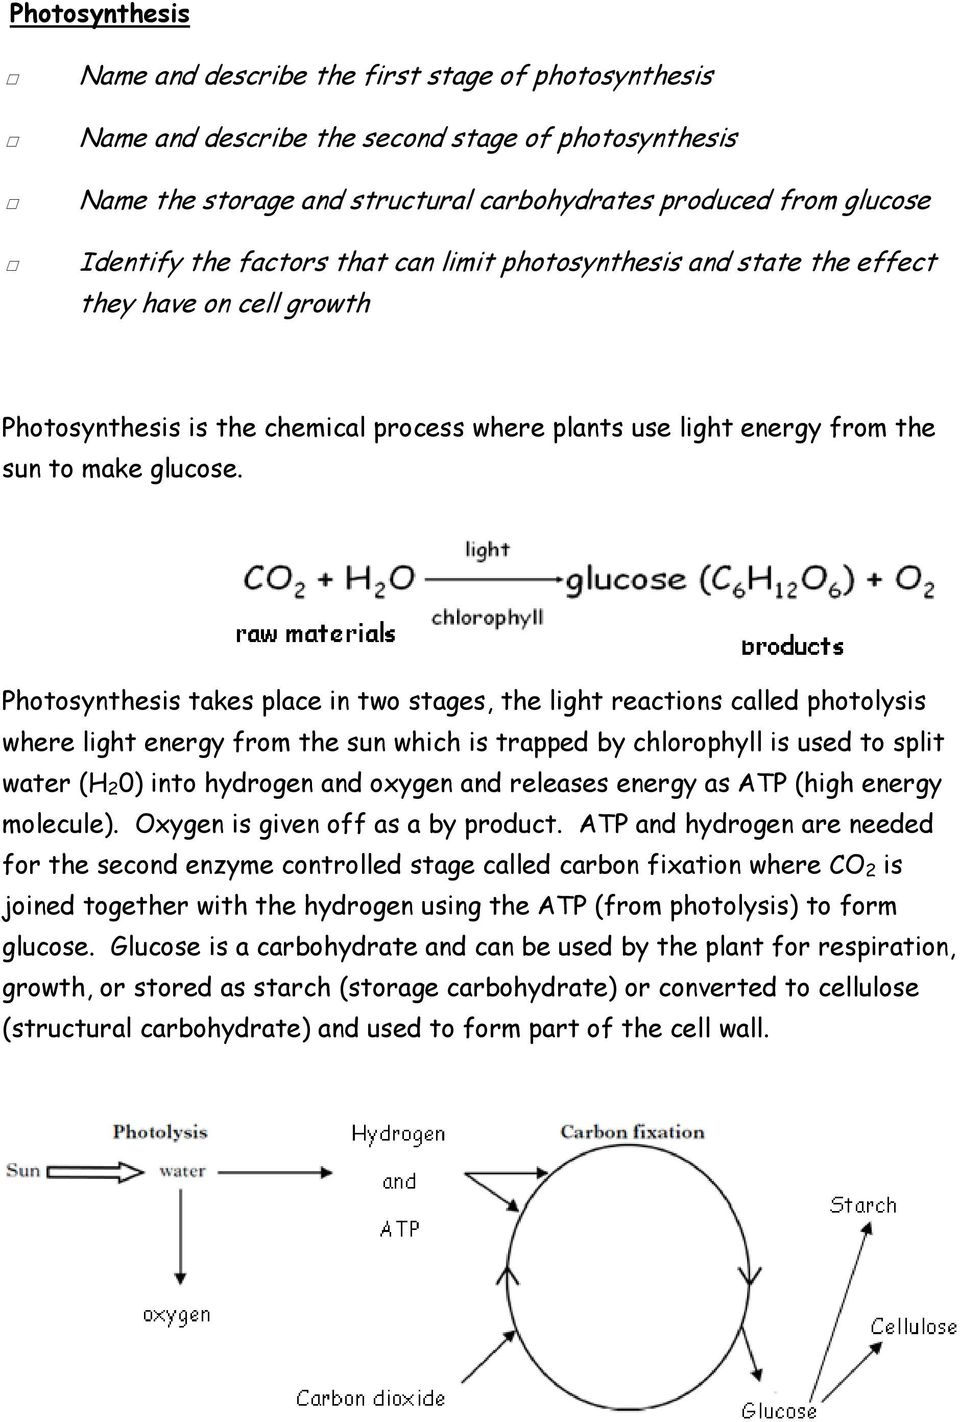 Photosynthesis takes place in two stages, the light reactions called photolysis where light energy from the sun which is trapped by chlorophyll is used to split water (H 2 0) into hydrogen and oxygen